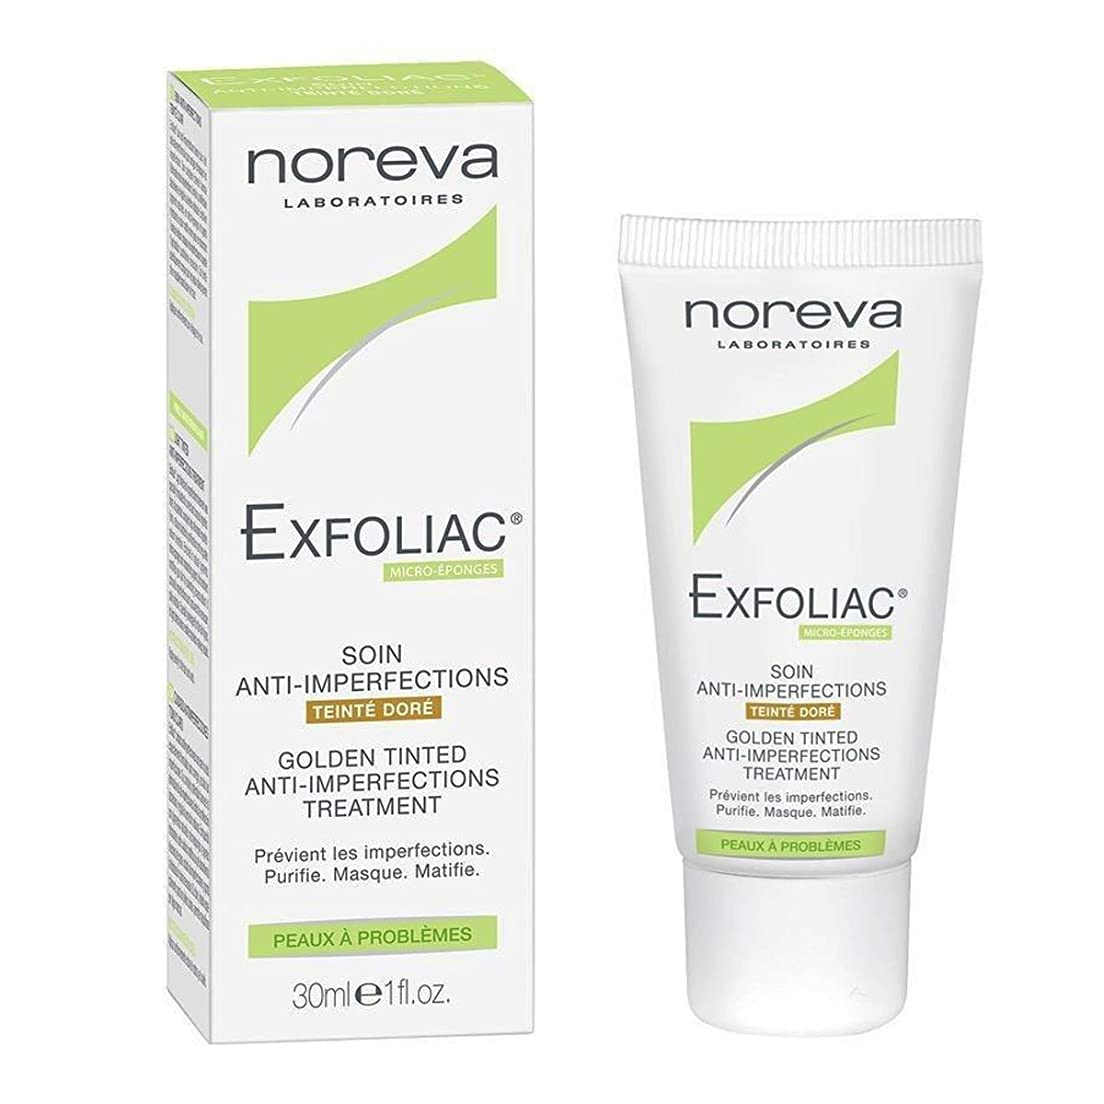 経済露マナーNoreva Exfoliac Anti-imperfections Care Golden Tinted 30ml [並行輸入品]